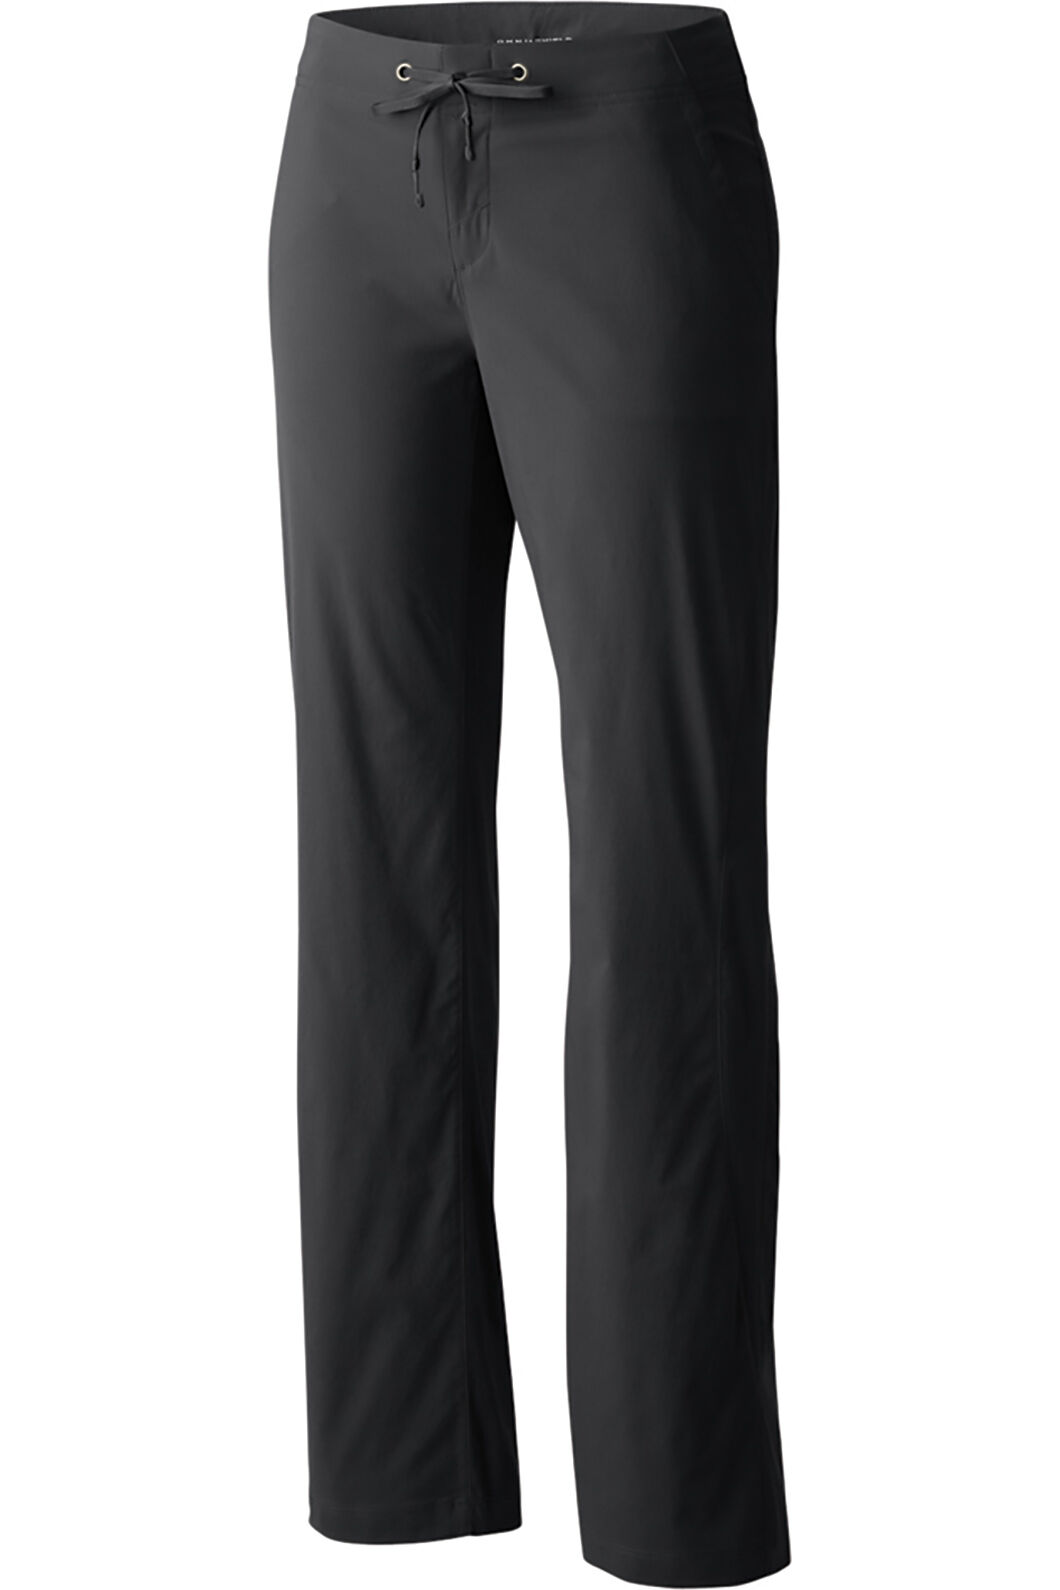 Columbia Women's Anytime Slim Pant, Black, hi-res